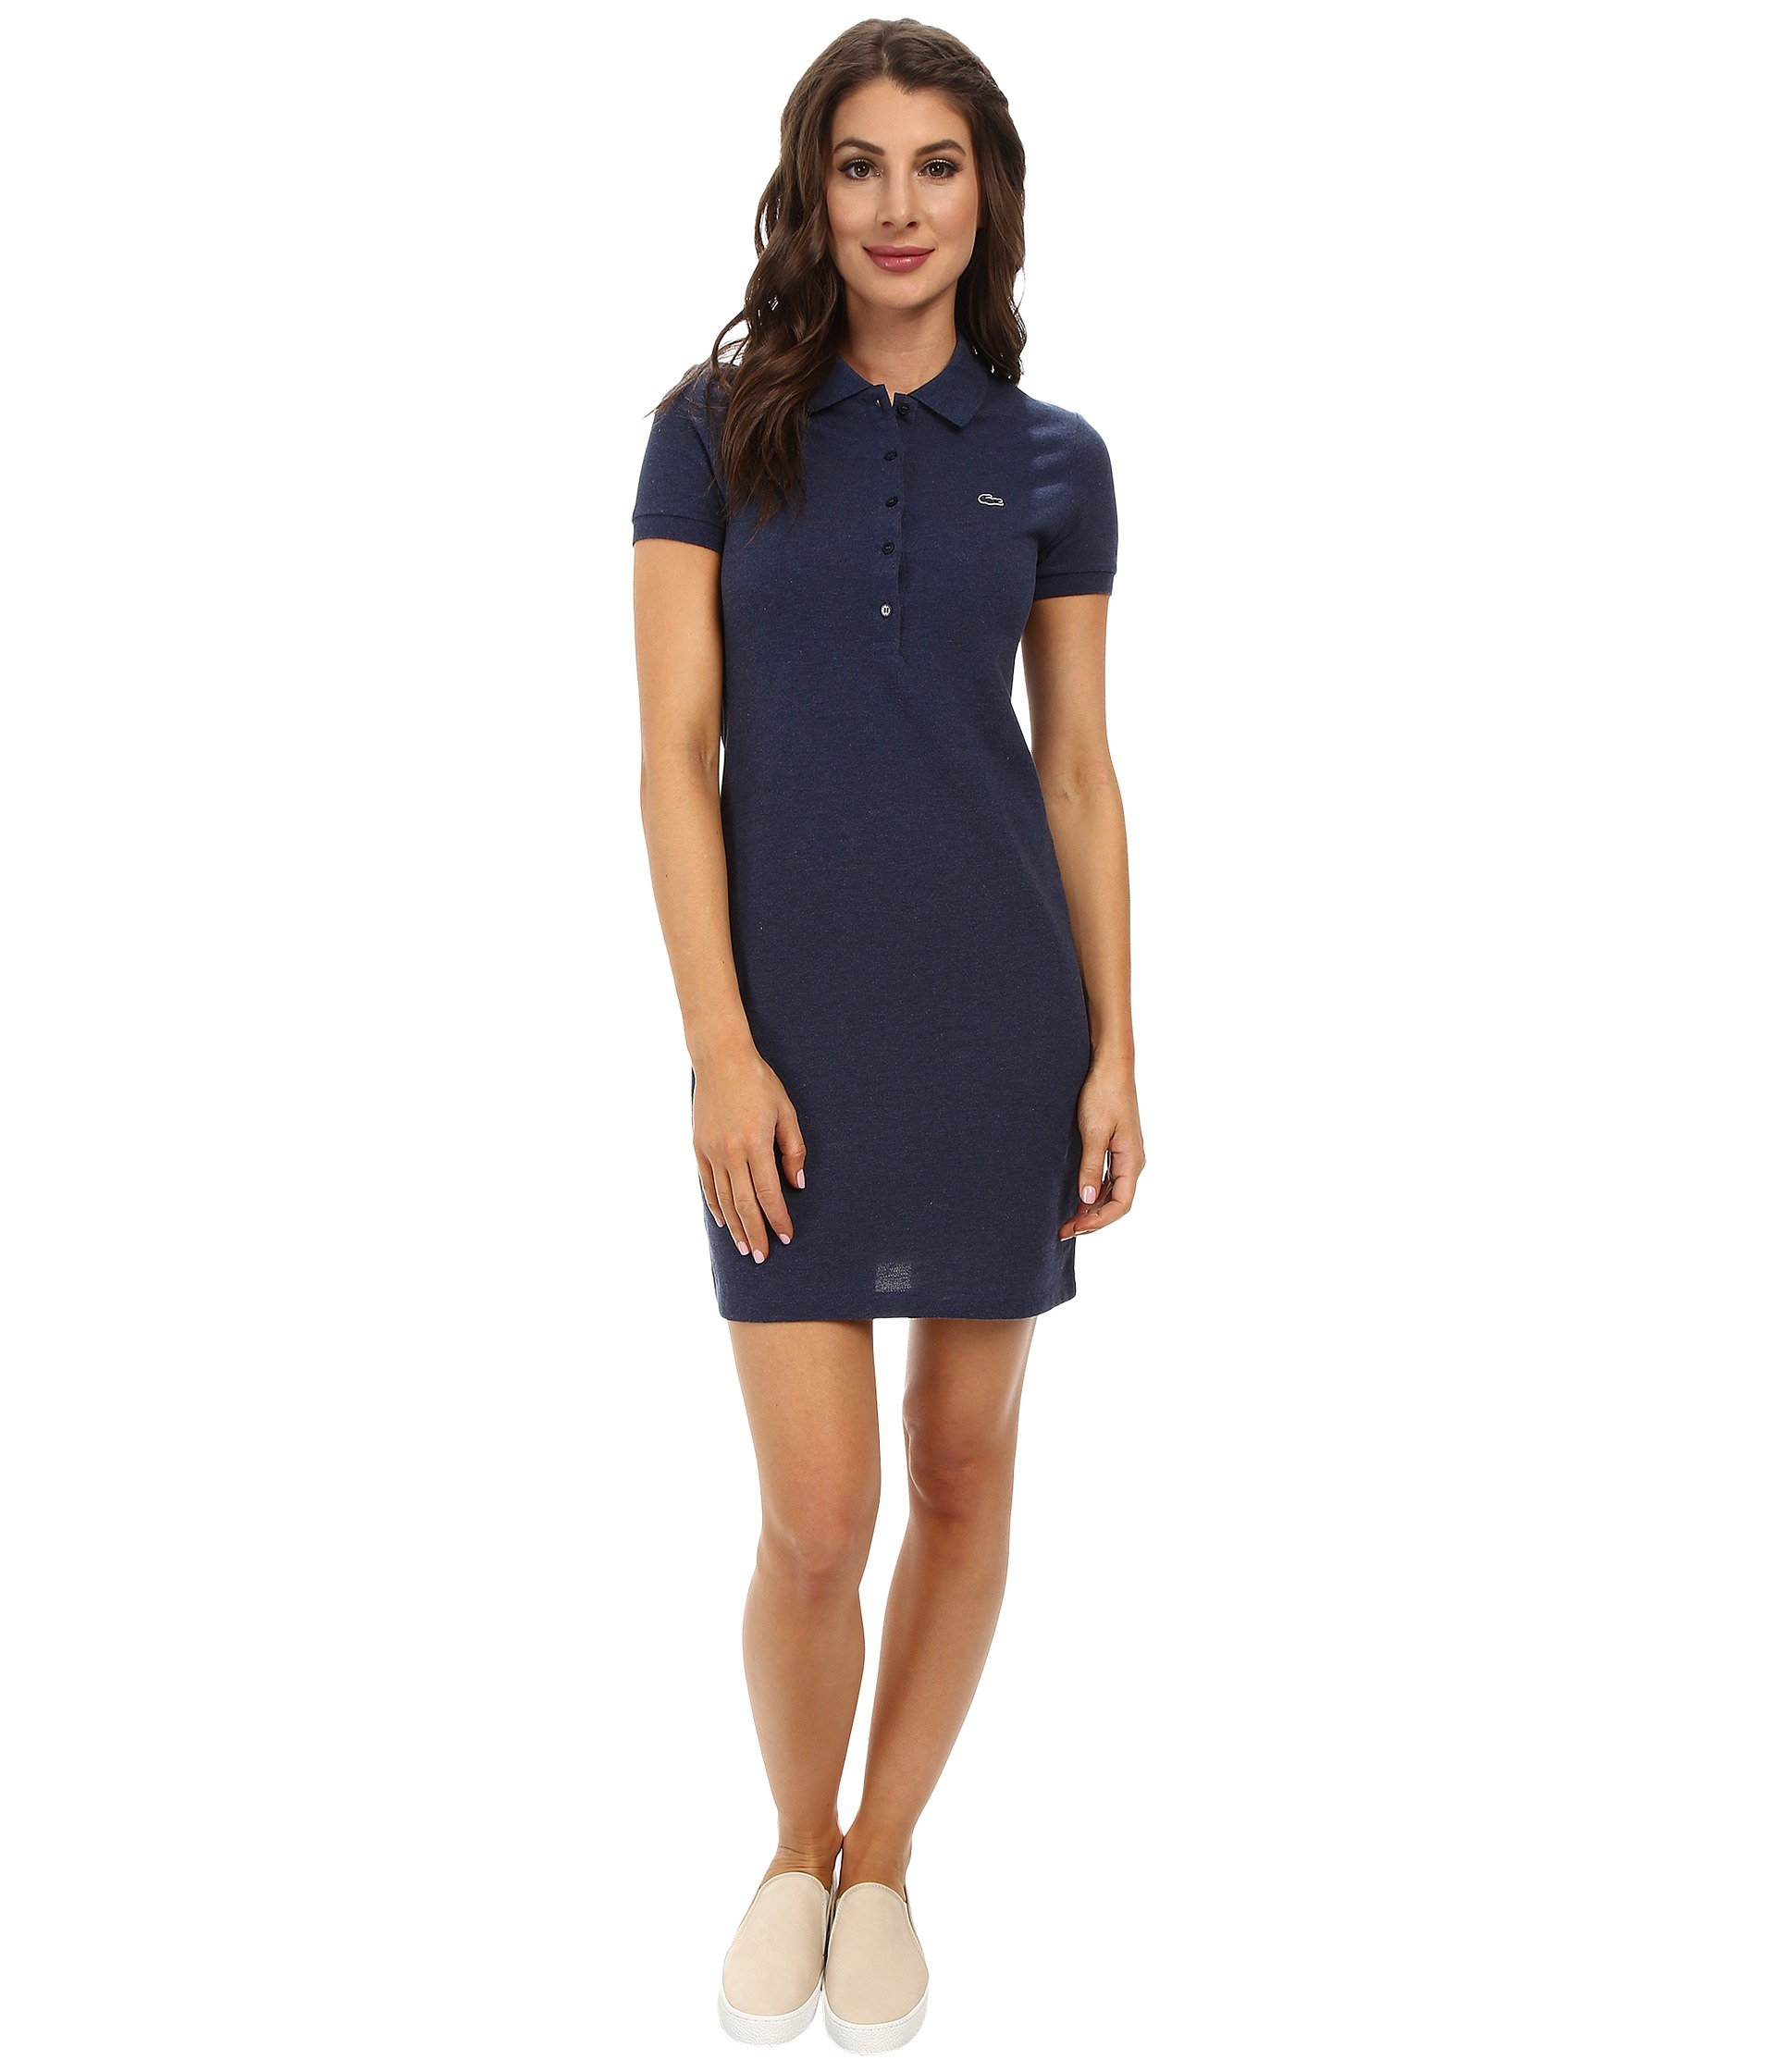 This girls' light blue short-sleeve polo dress is crafted in pure cotton pique with a contrast rib collar with a slightly scalloped edge. ImportedPrice: $